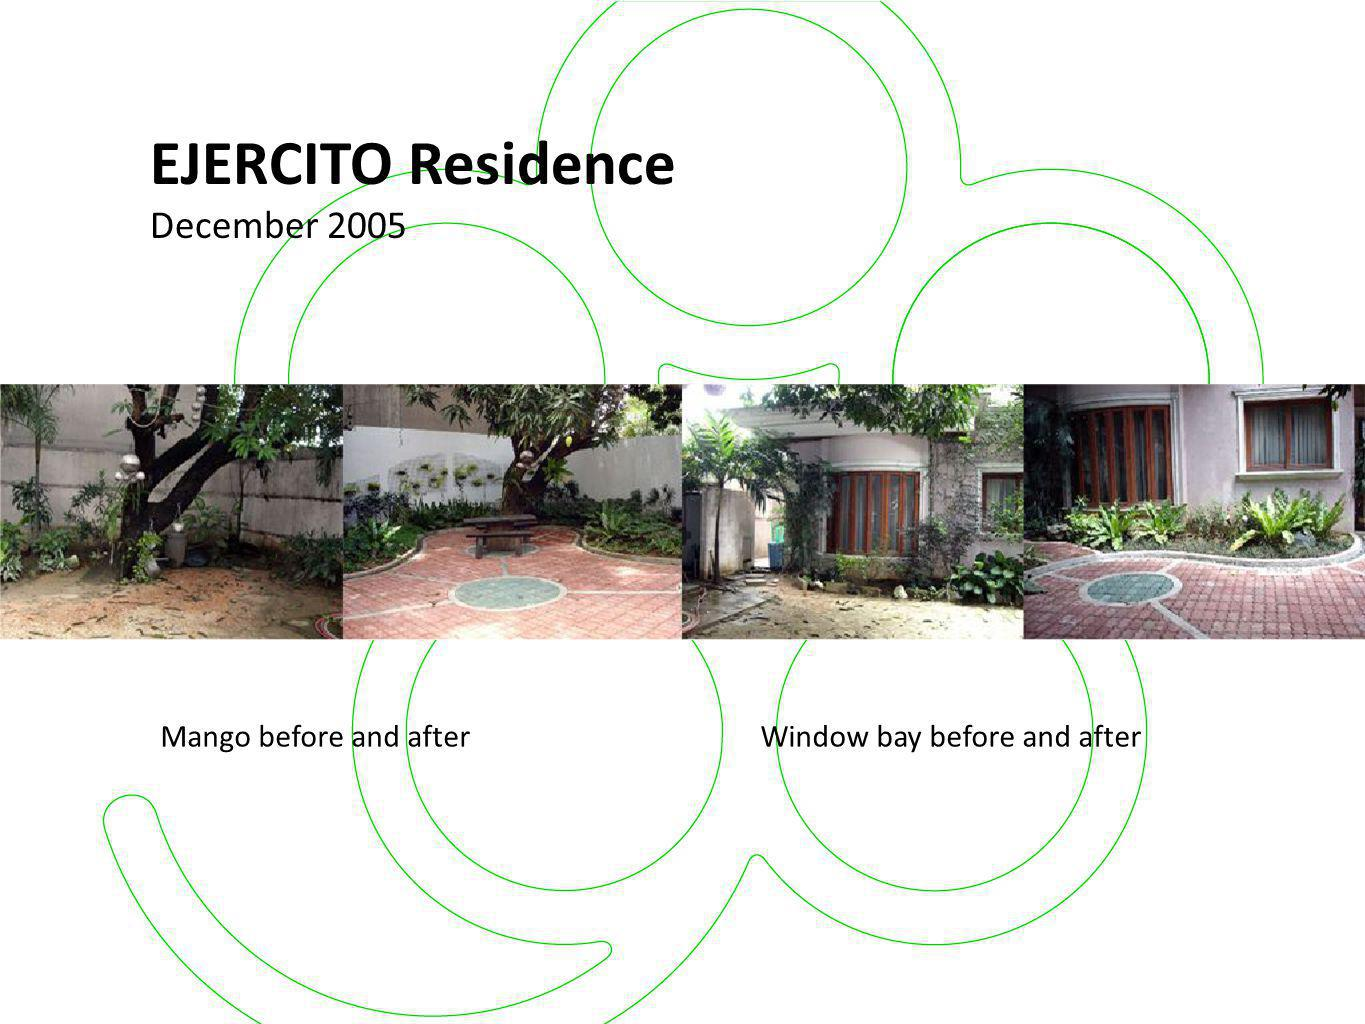 EJERCITO Residence December 2005 Mango before and after